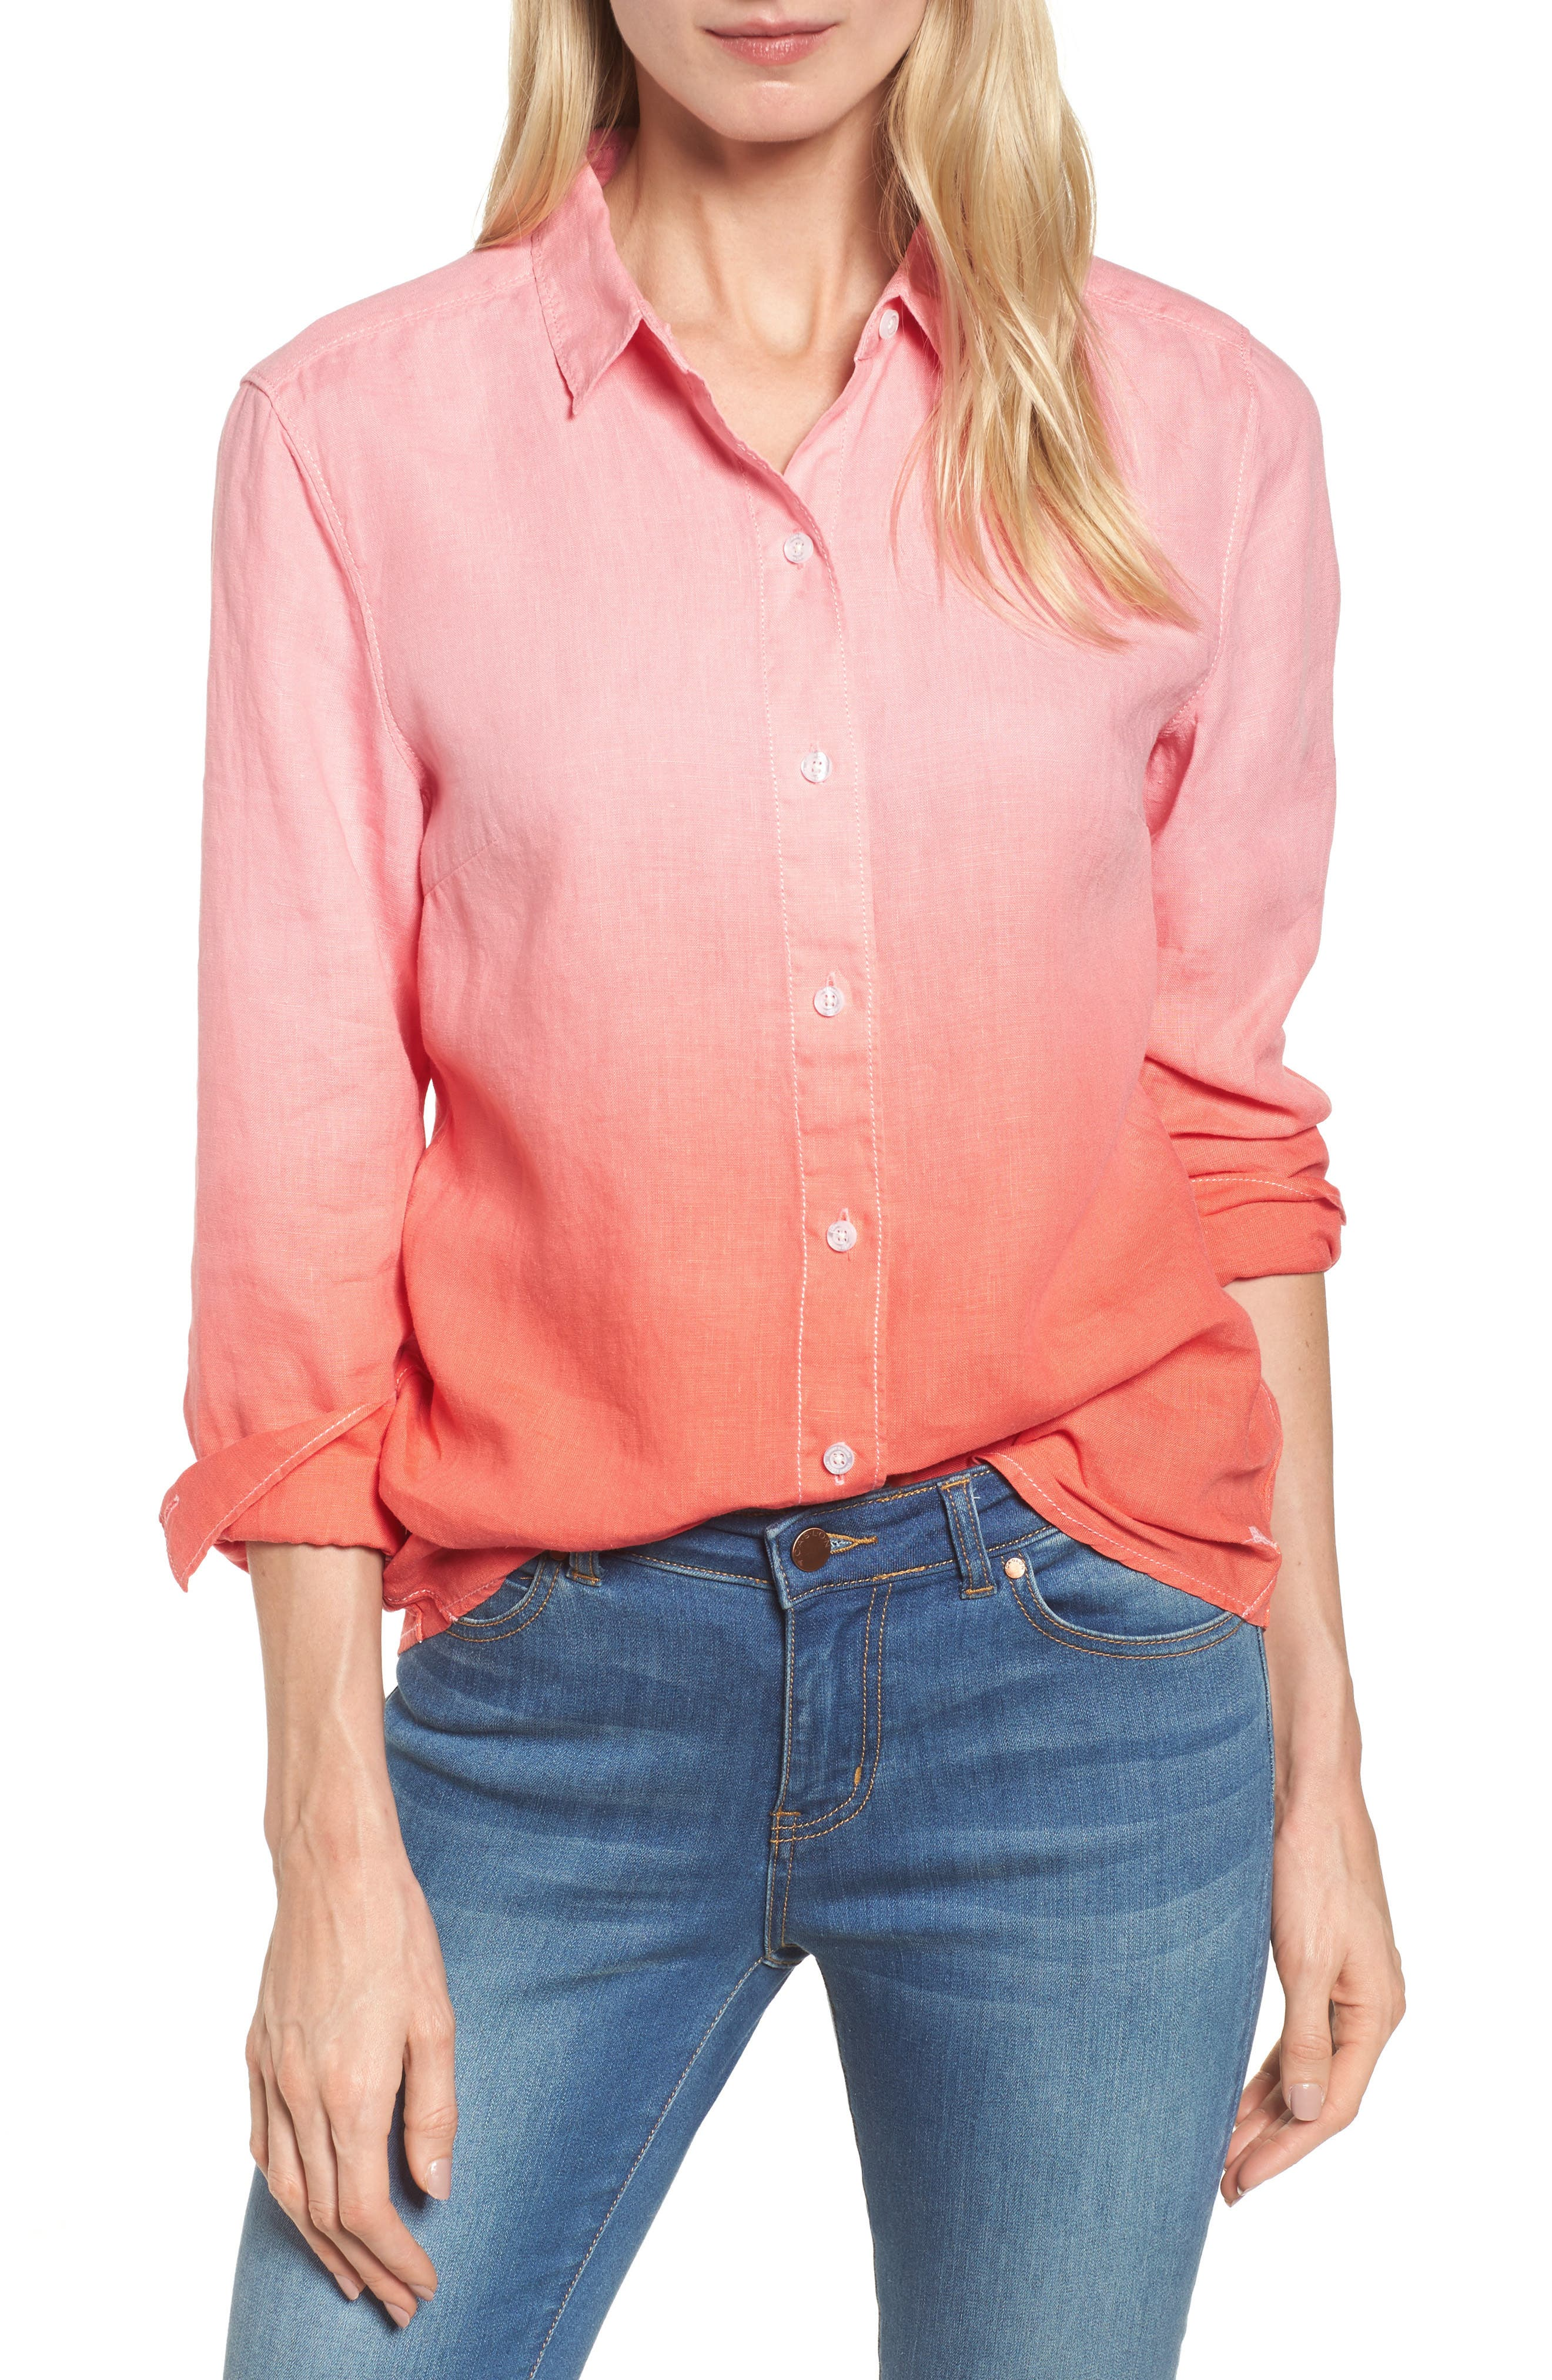 Two Palms Dip Dye Top,                         Main,                         color, CABANA PINK/ BURNT CORAL